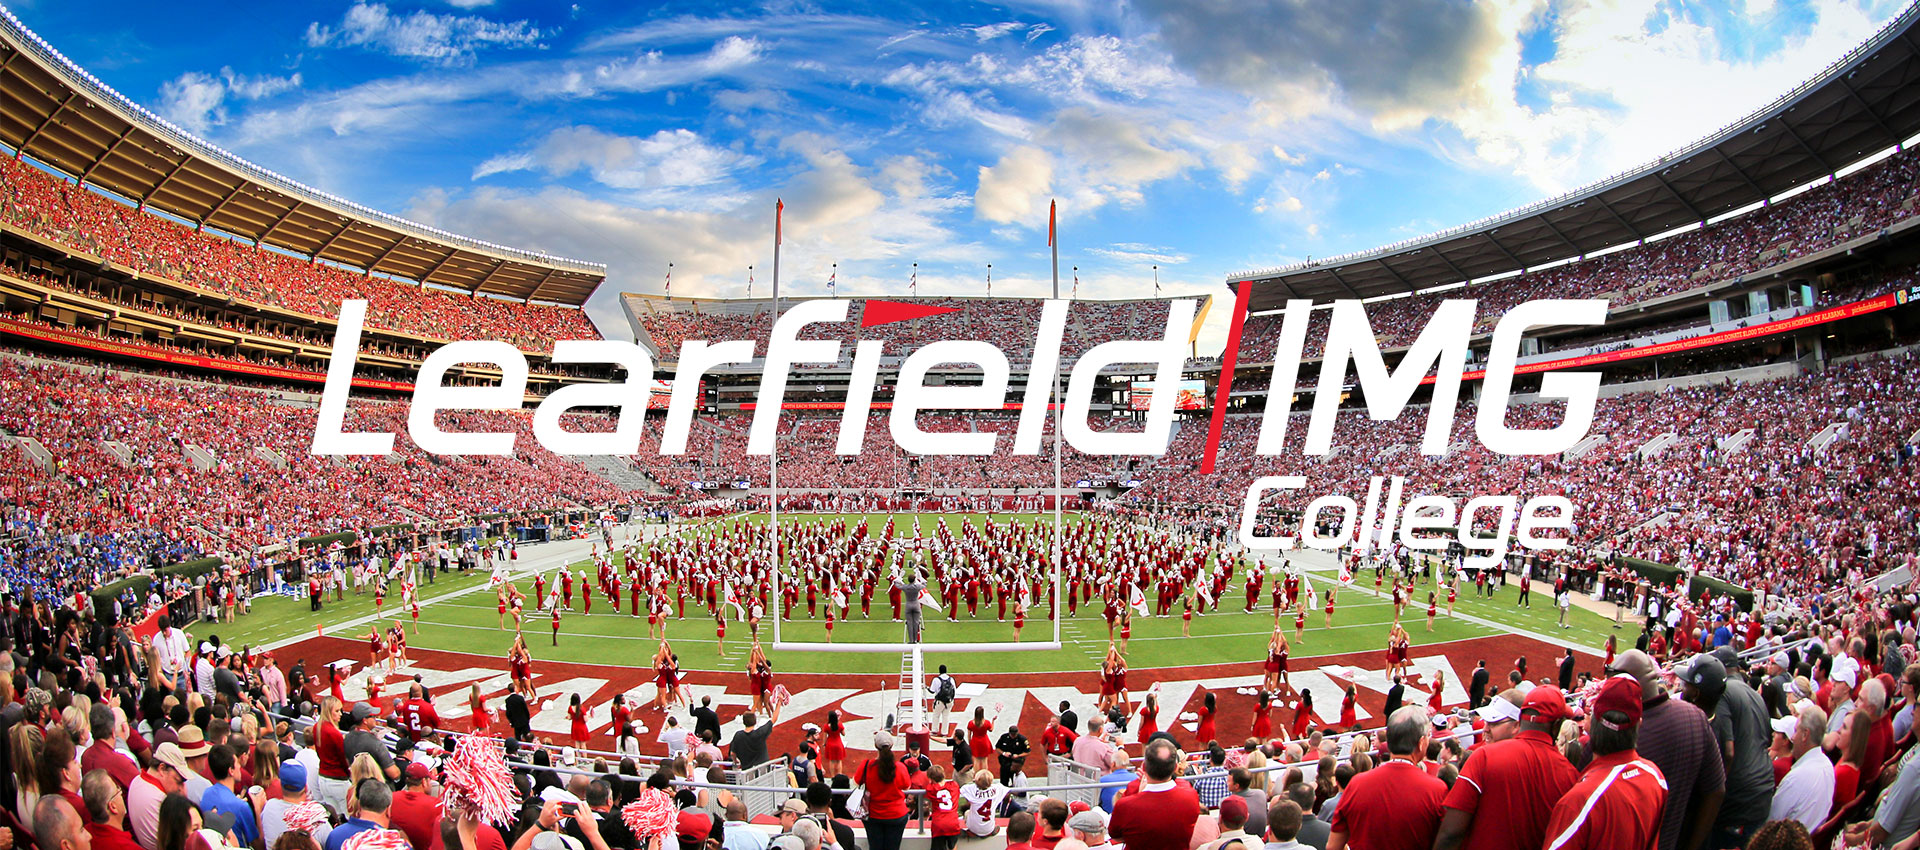 Alabama-LearfieldIMG